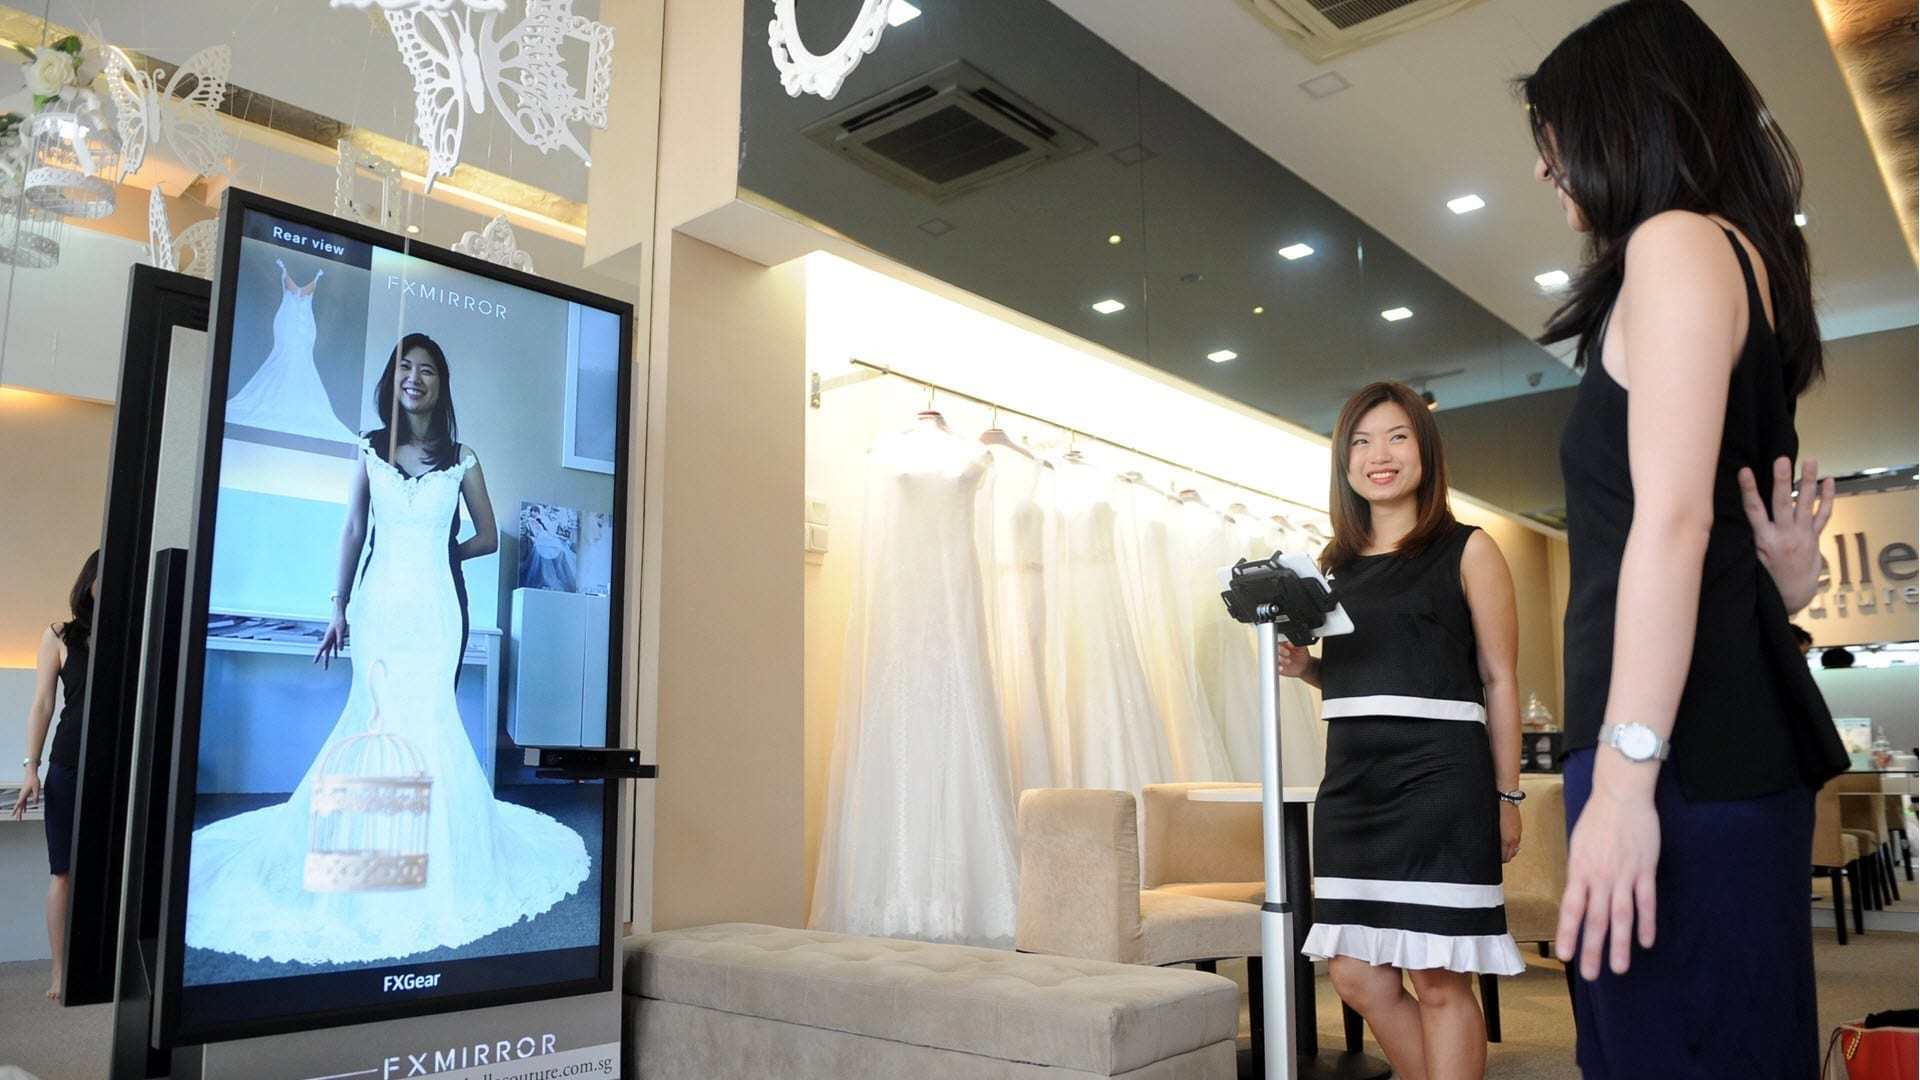 Virtual Fitting Room (VFR) Market to Make Notable Gains as Modern Fashion Technologies Pick up Pace in Emerging Economies